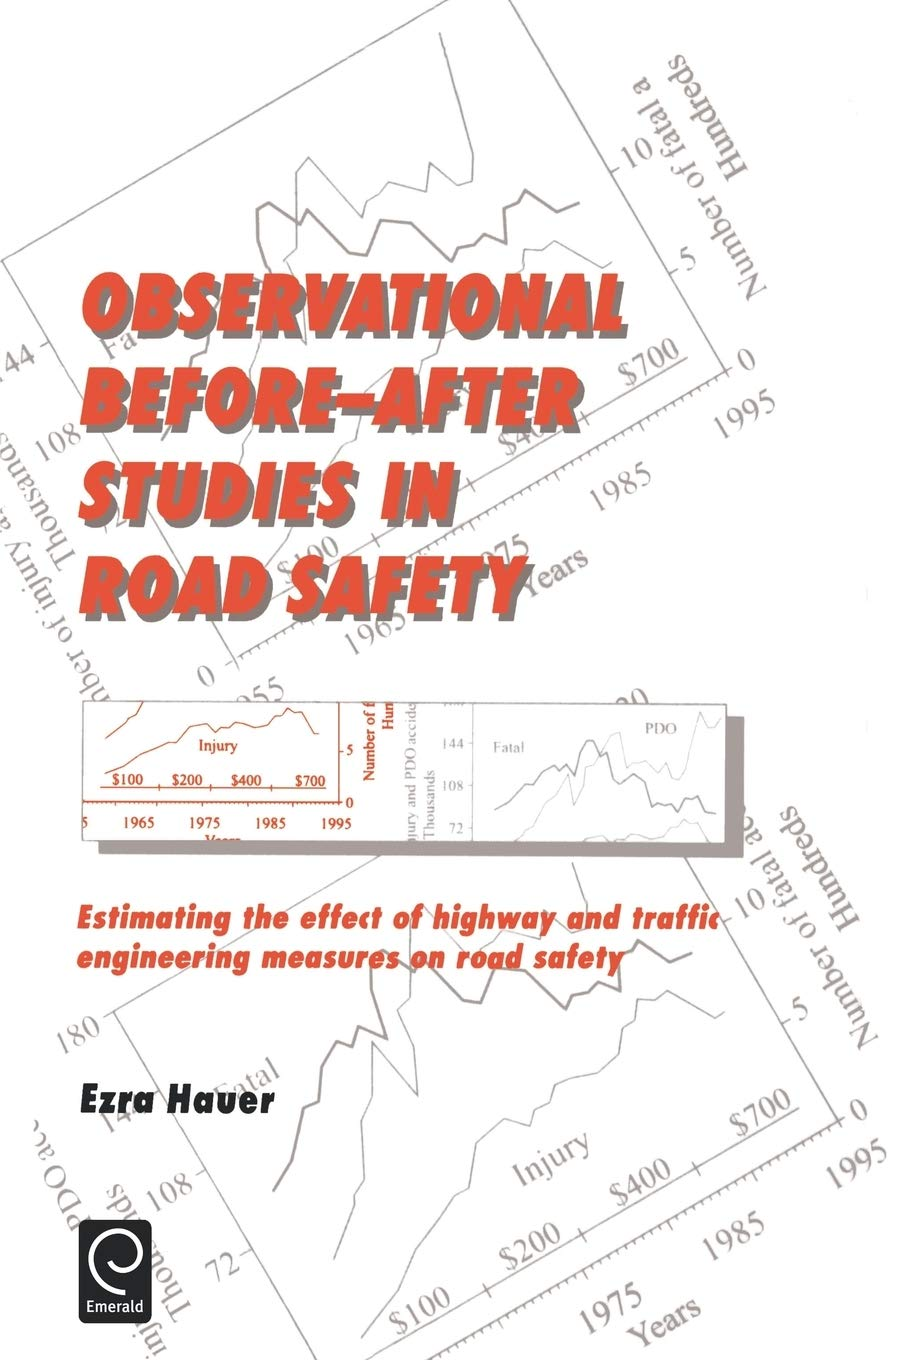 Observational Before-After Studies In Road Safety